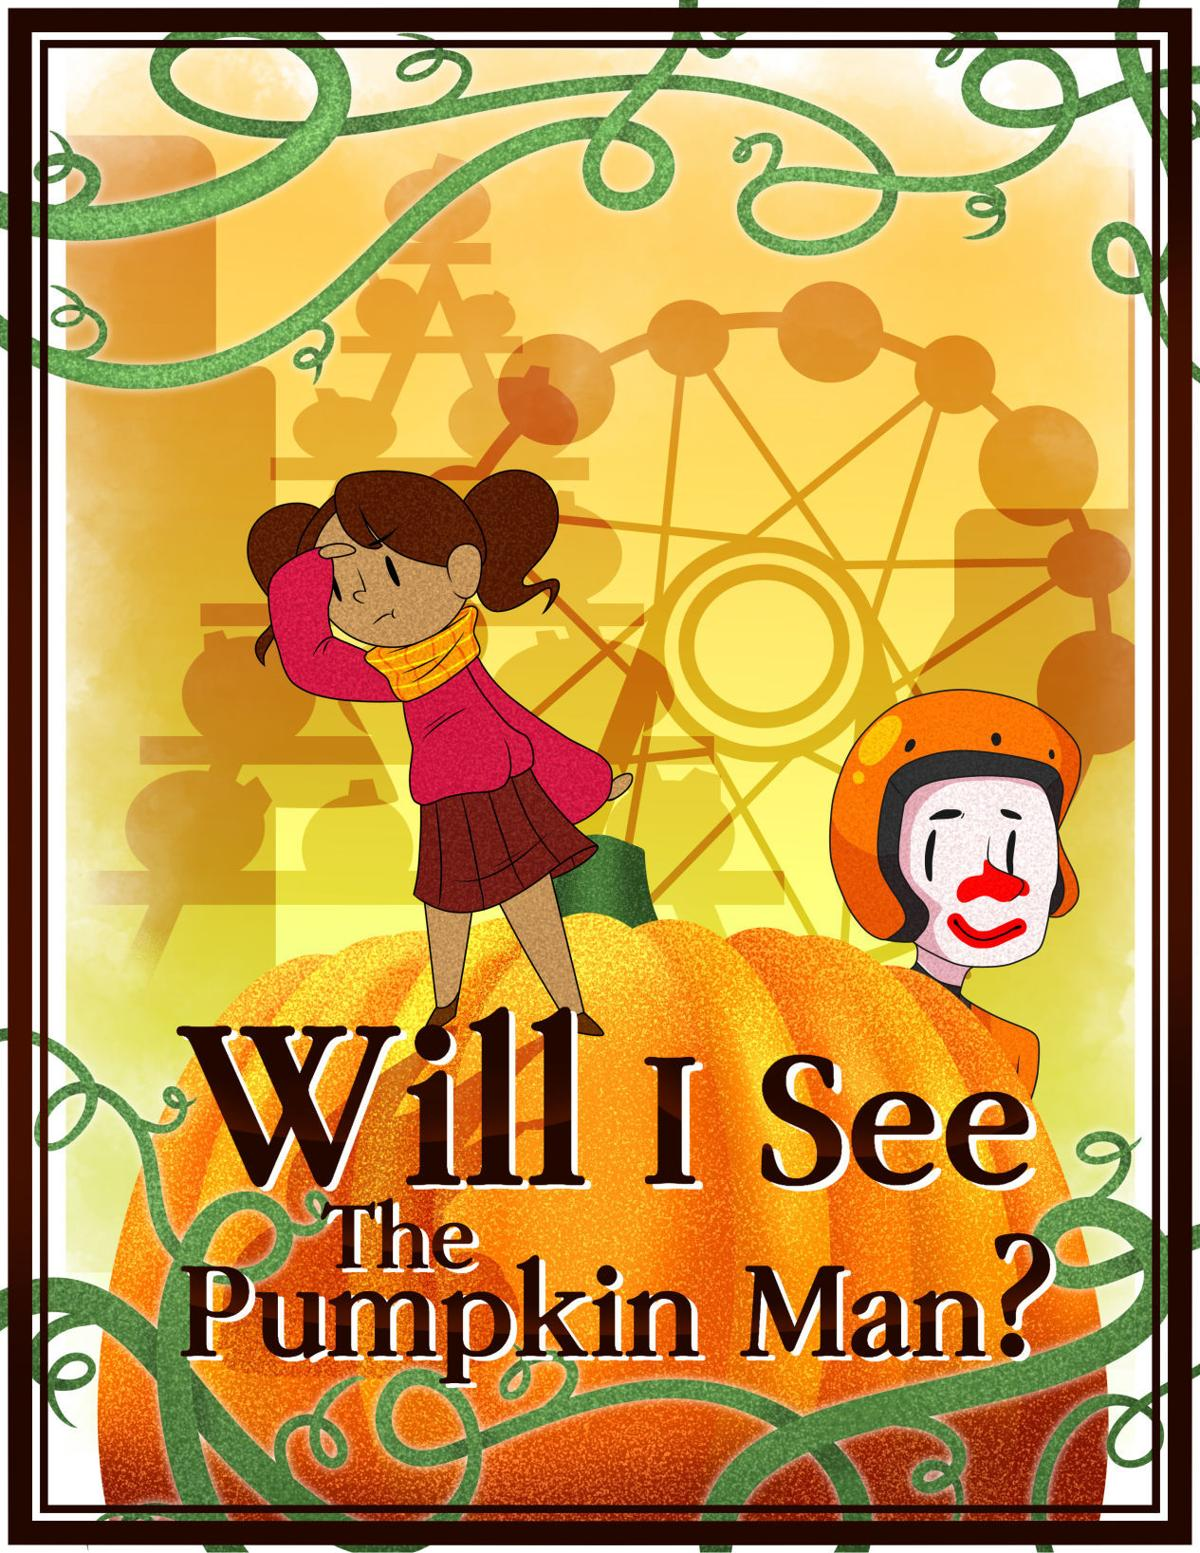 Will I See the Pumpkin Man cover